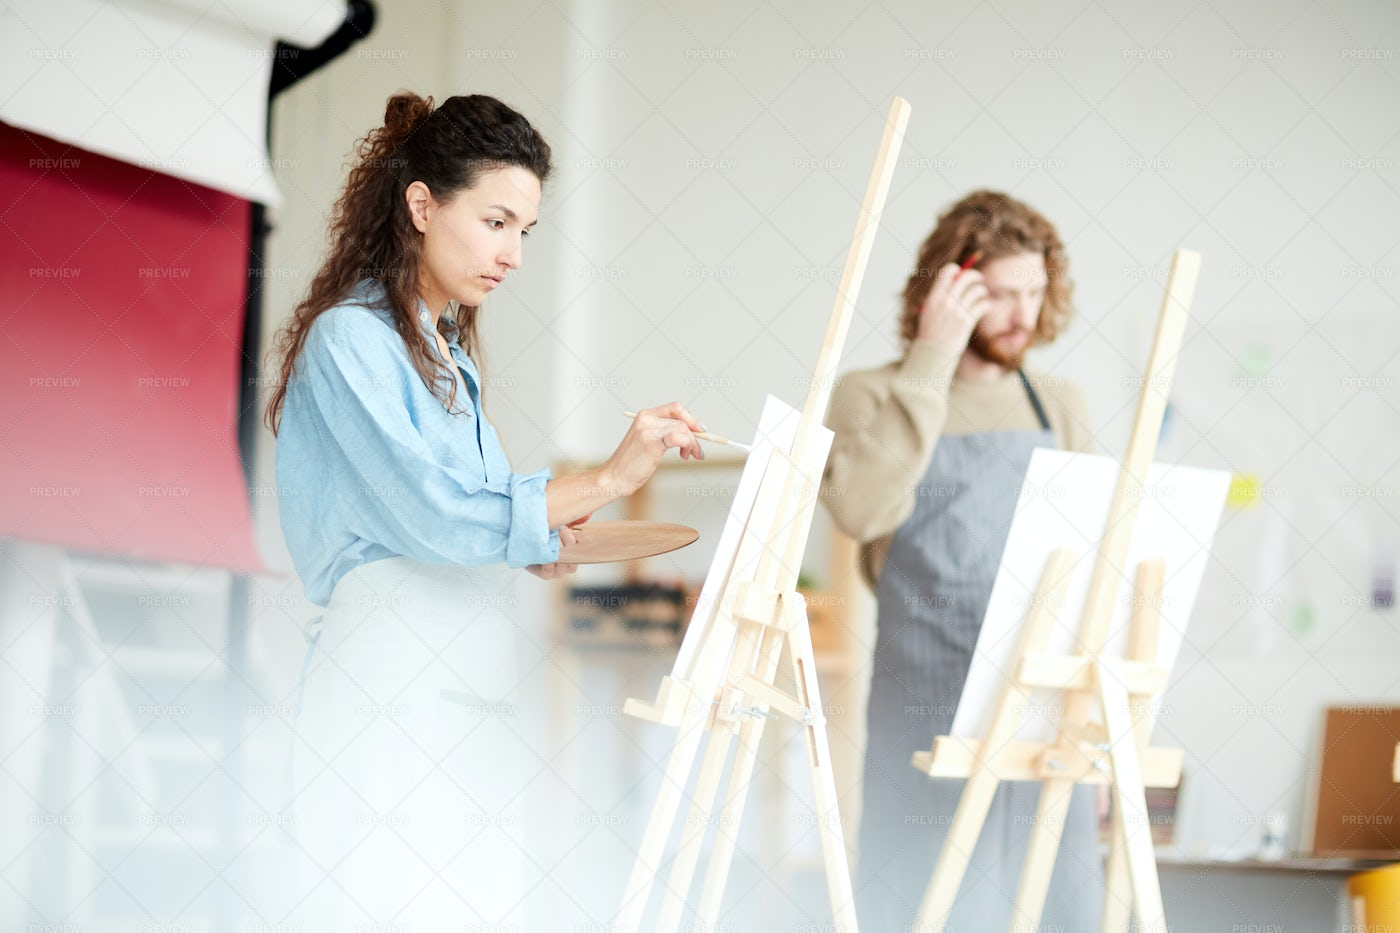 Painting In Workshop: Stock Photos